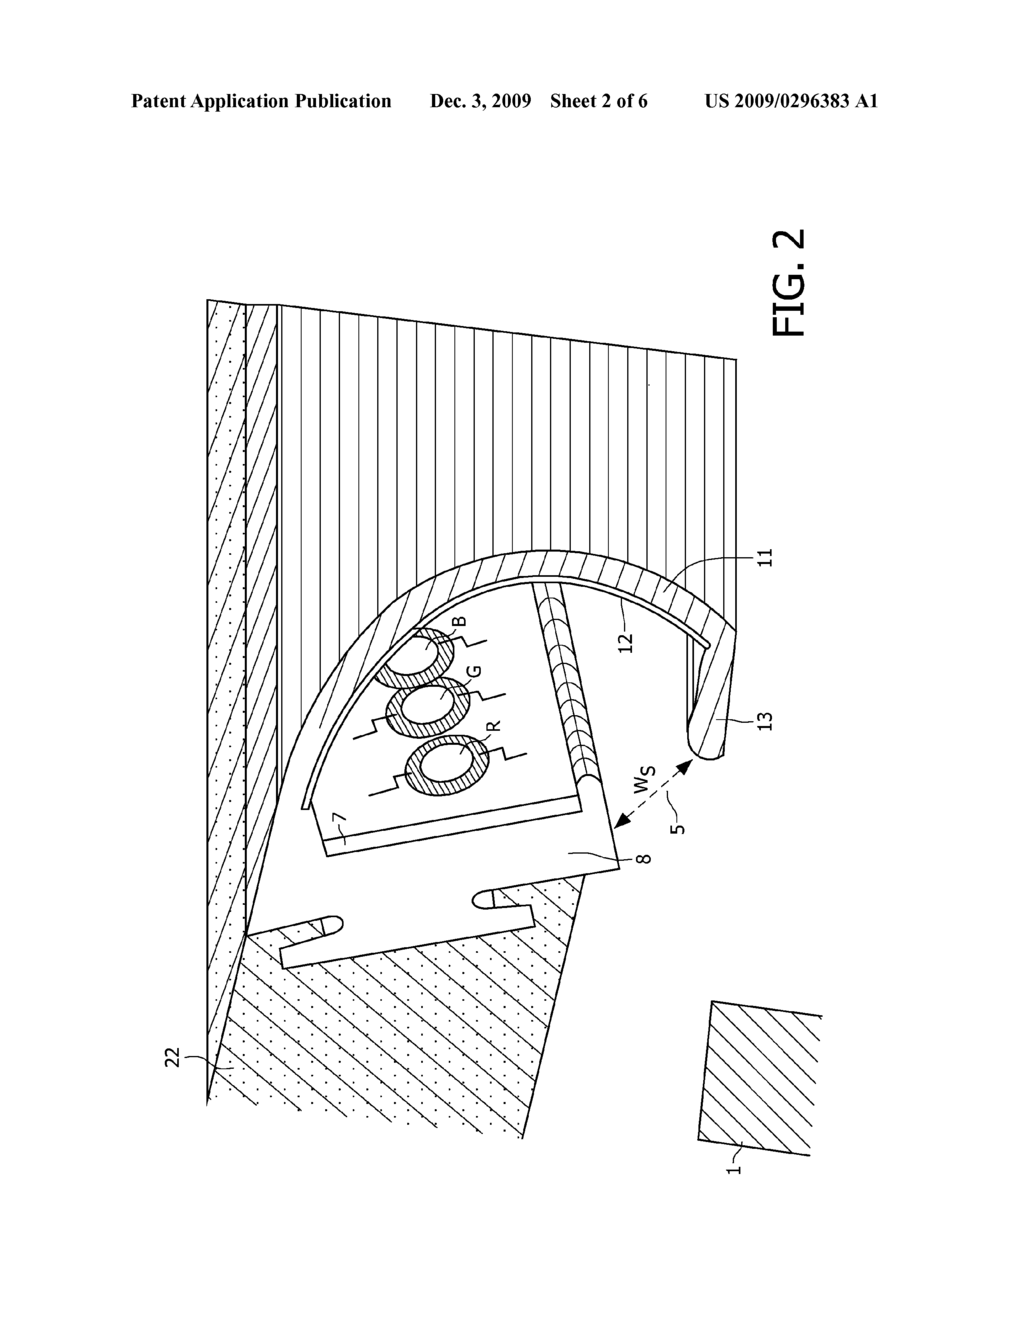 Illumination System Shelf Lighting And Wall Washer Diagram Of Schematic Image 03